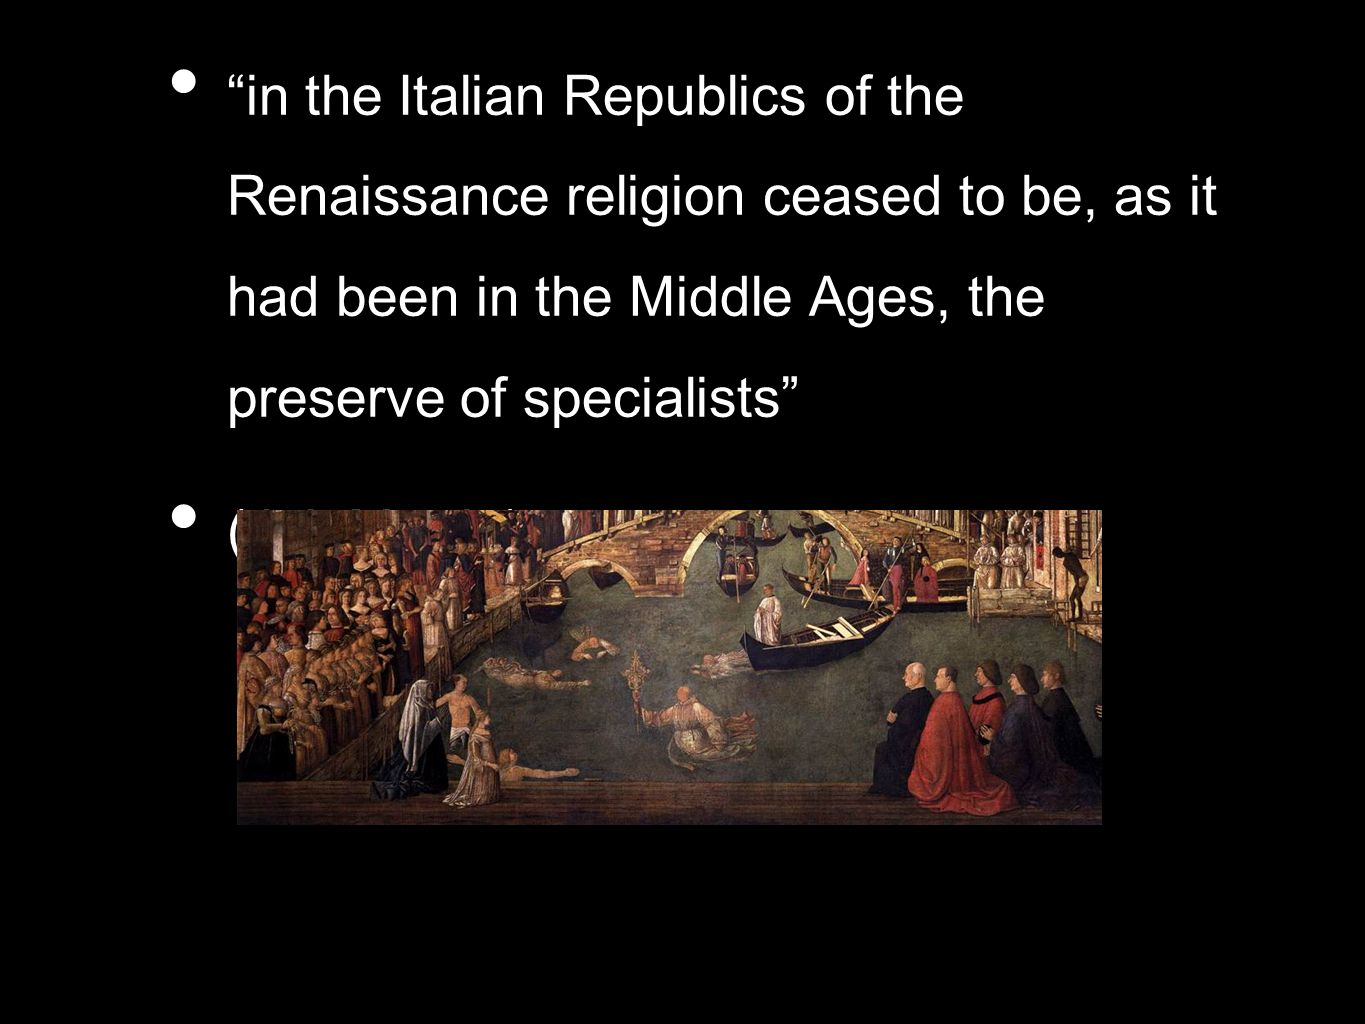 in the Italian Republics of the Renaissance religion ceased to be, as it had been in the Middle Ages, the preserve of specialists